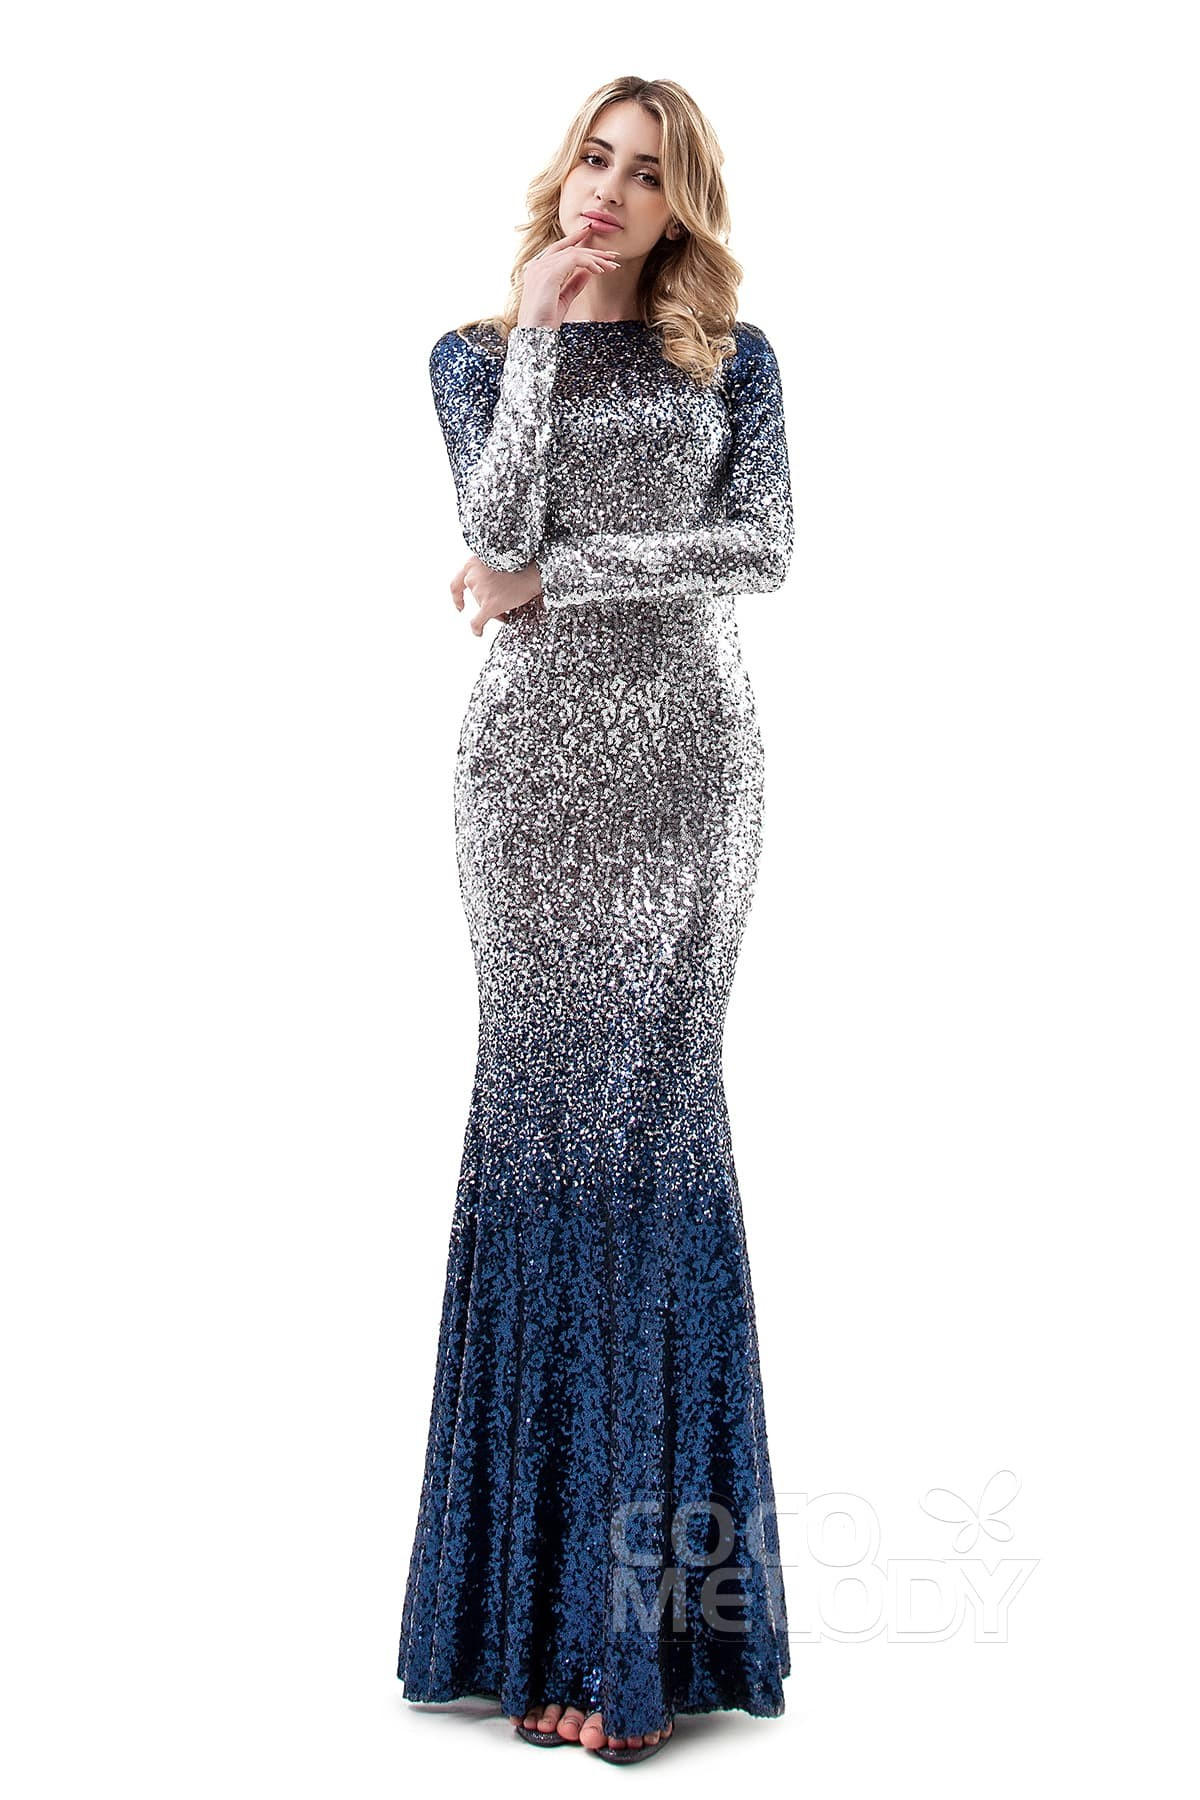 Trumpet-Mermaid Floor Length Sequined Dress PR3367 | Cocomelody